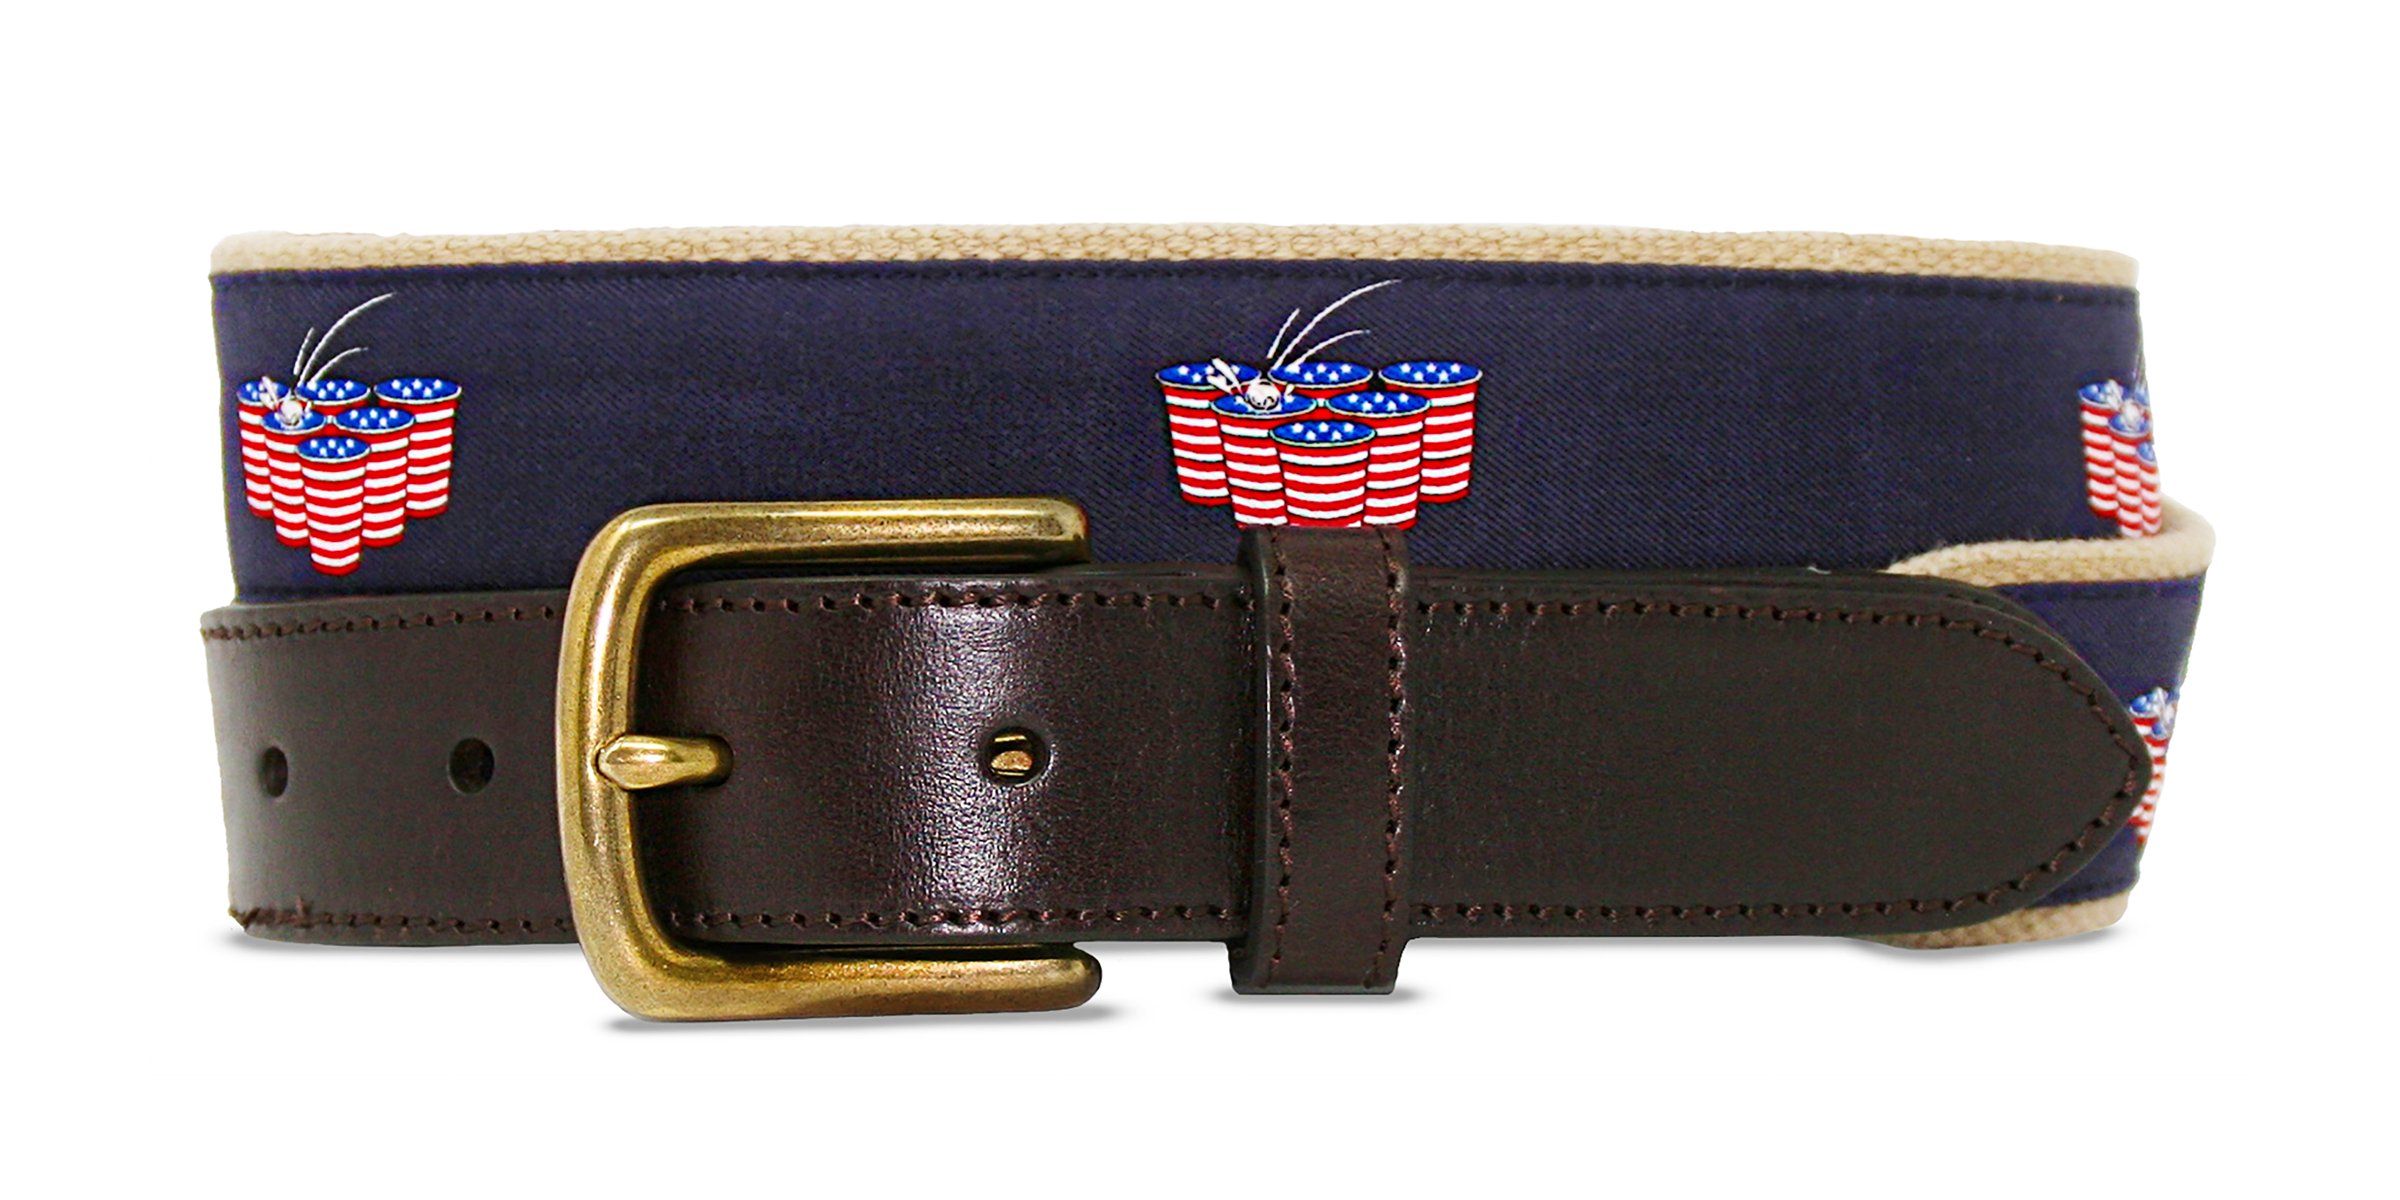 Club Belt-American Flag-Preppy-Beer Pong-Khaki-Cold Glory